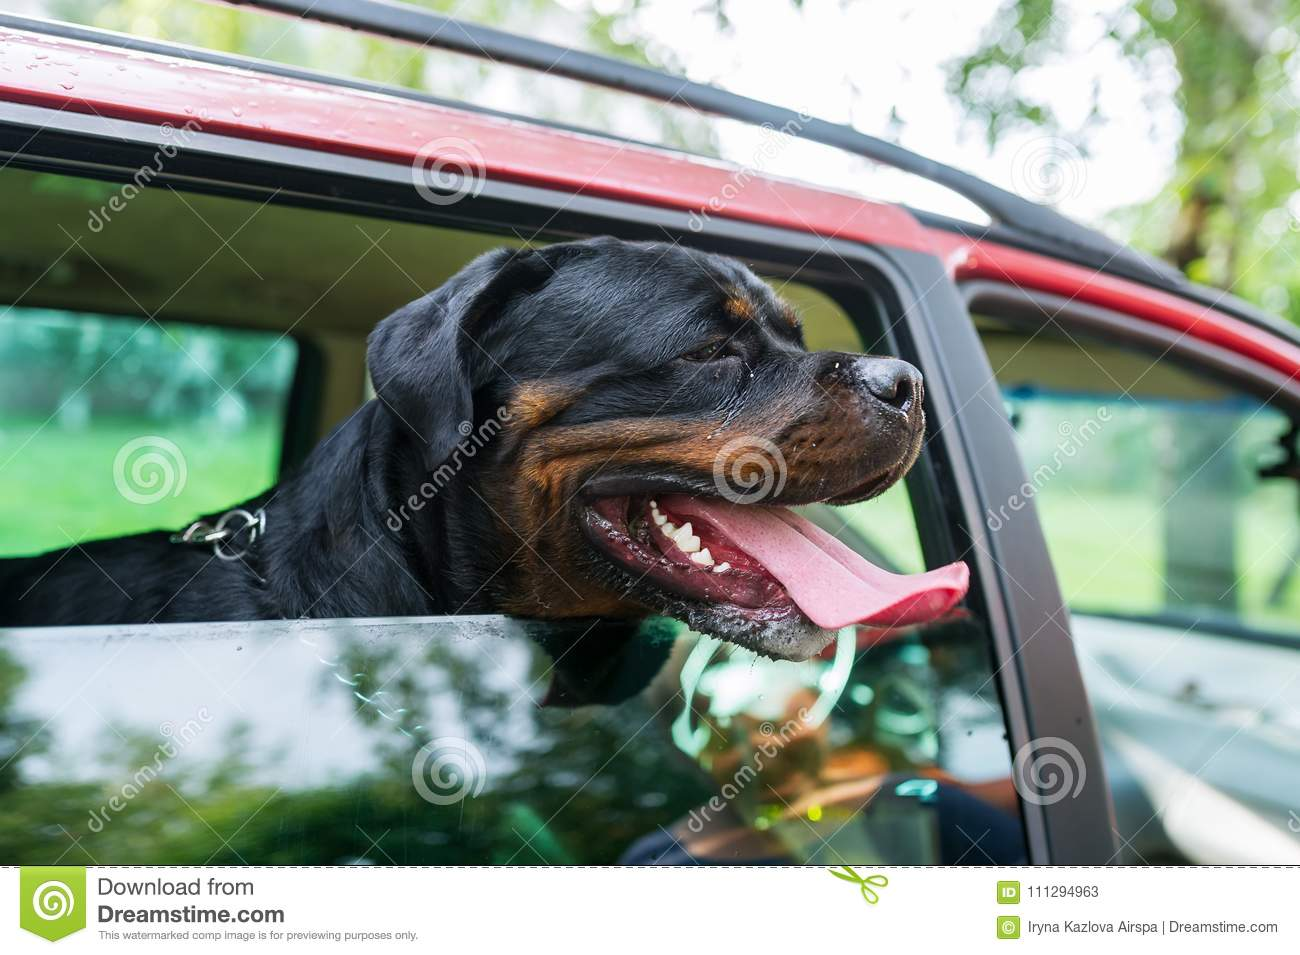 Black dog sit in the car and looks out of the window